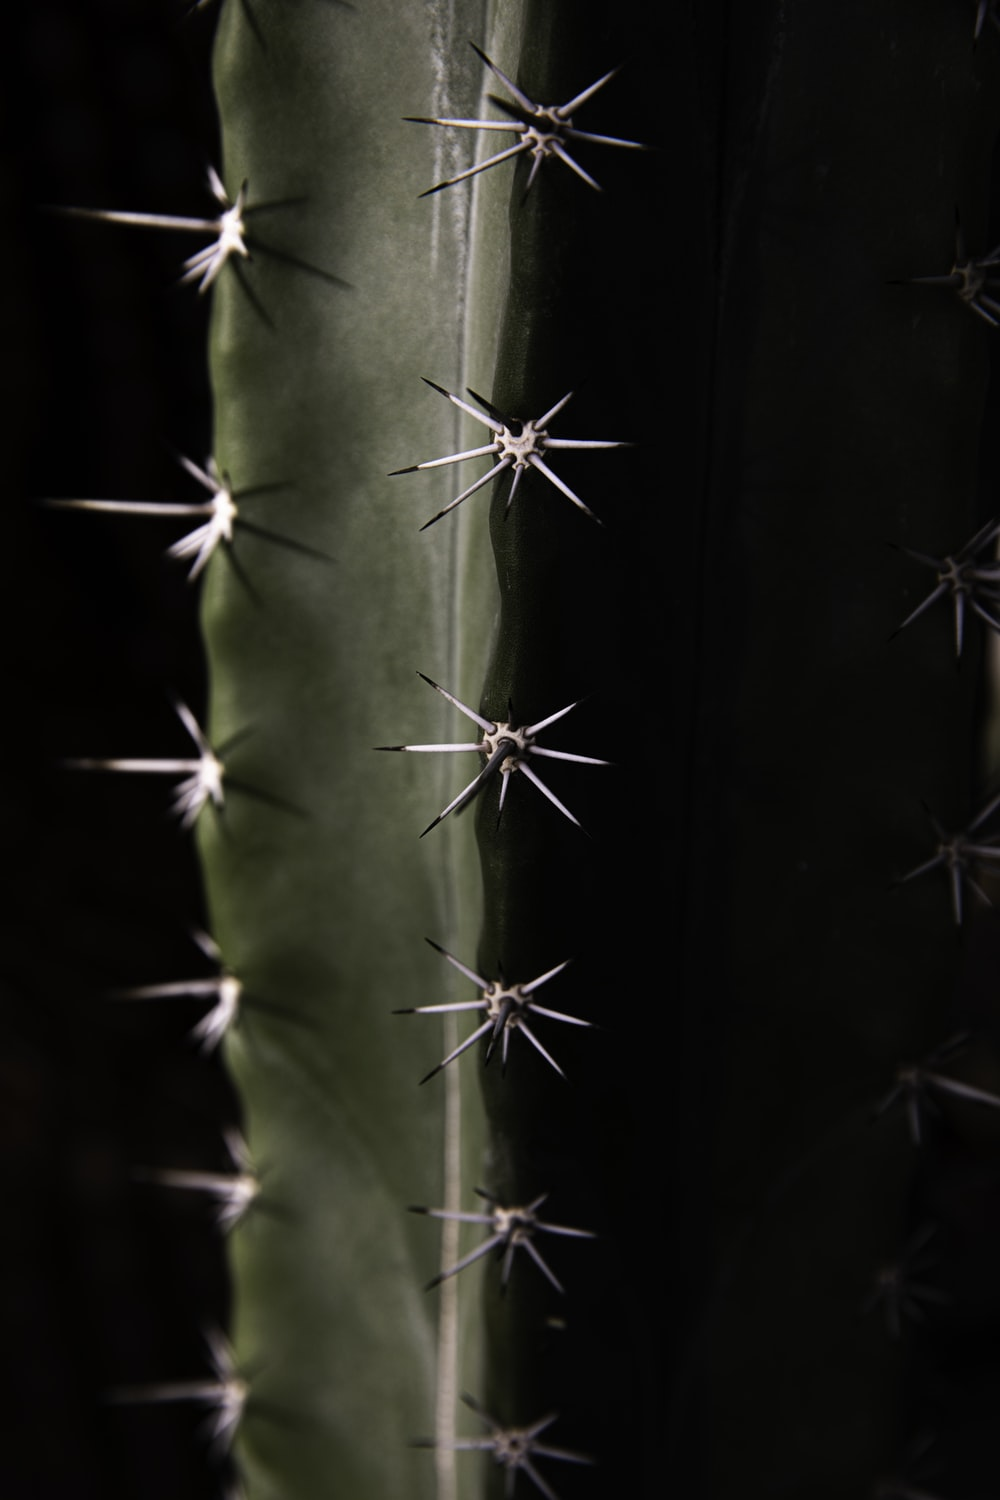 low-light photo of cactus plant